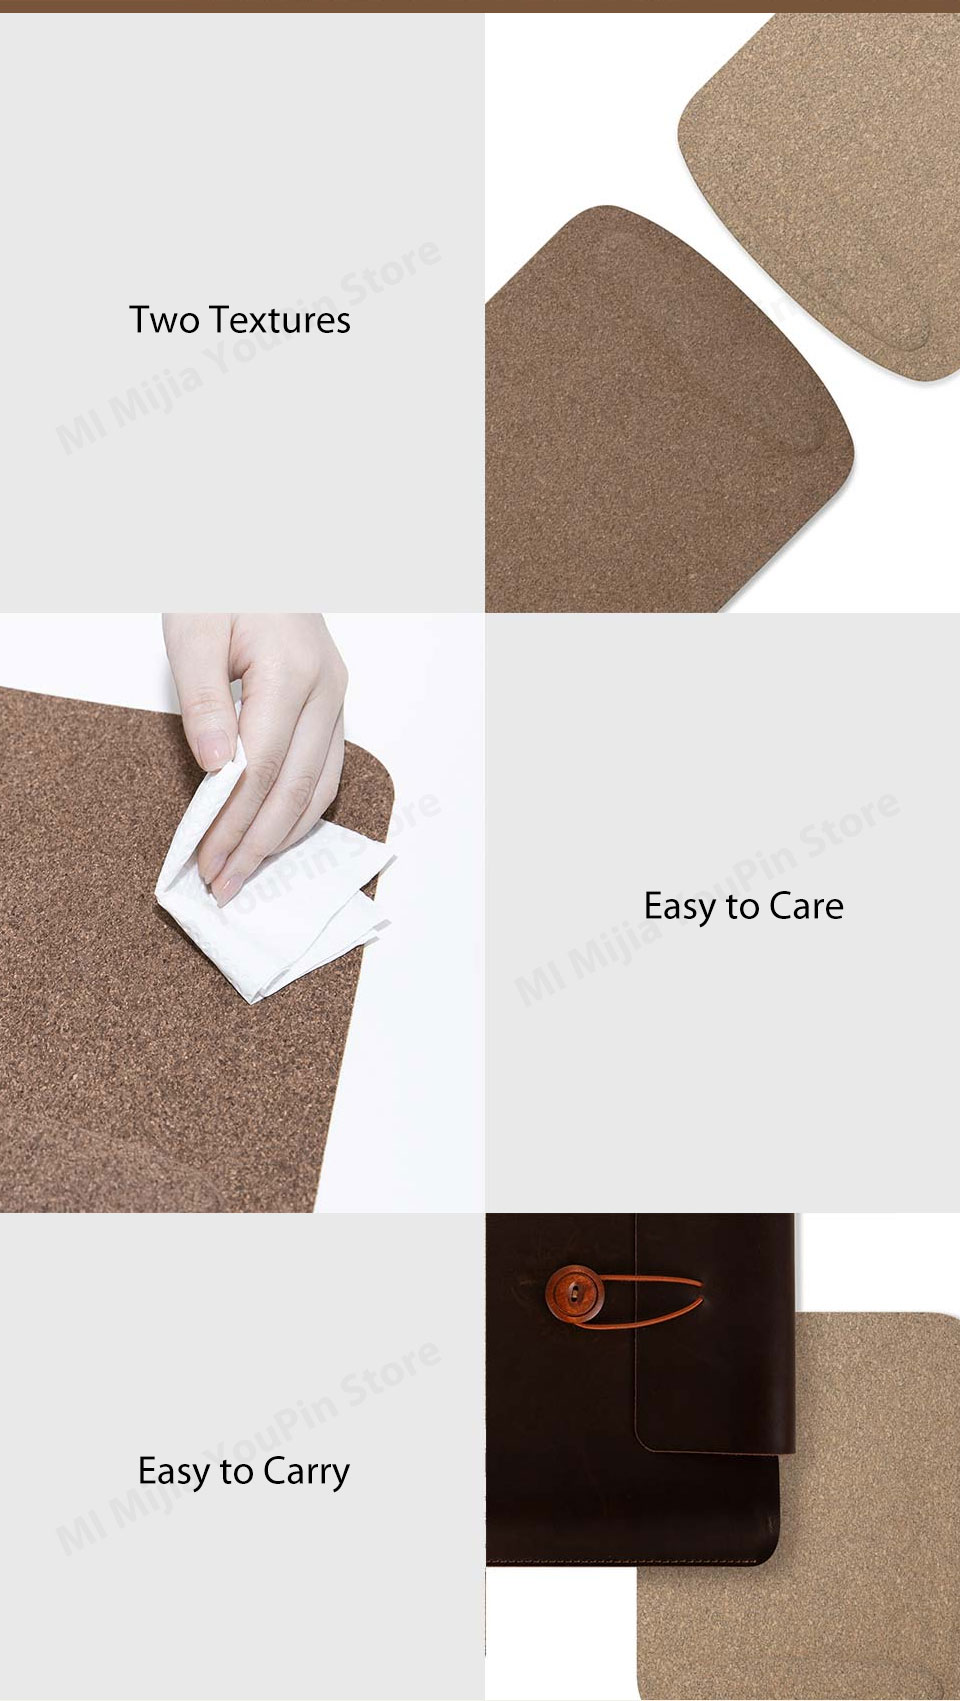 Xiaomi Youpin Mouse Pad Waterproof Skin Friendly Oak Coating Ergonomic Mouse Mat With Wrist Rest For Wired Wireless Gaming Mouse (10)